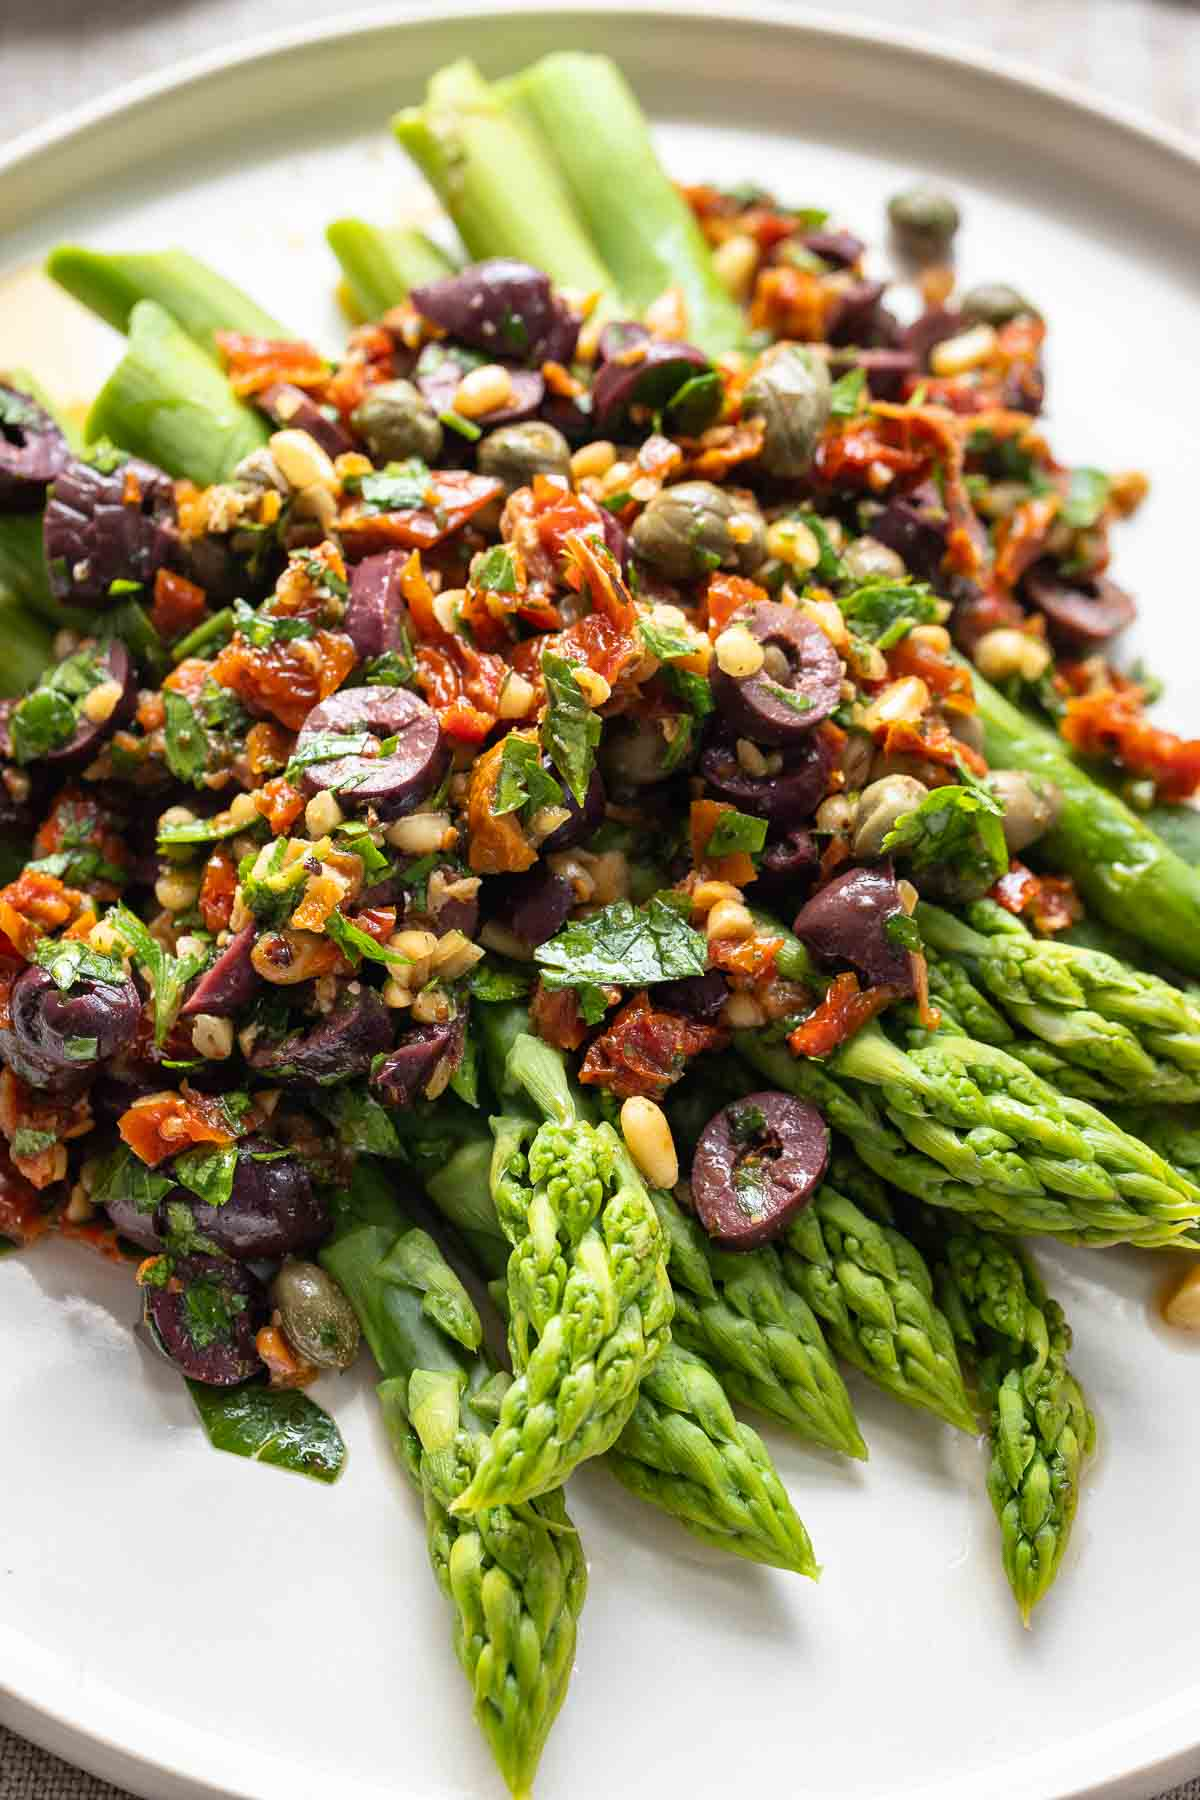 Greeen Asparagus with Mediterranean Salsa made from Sun-Dried Tomatoes, Olives & Pine Nuts